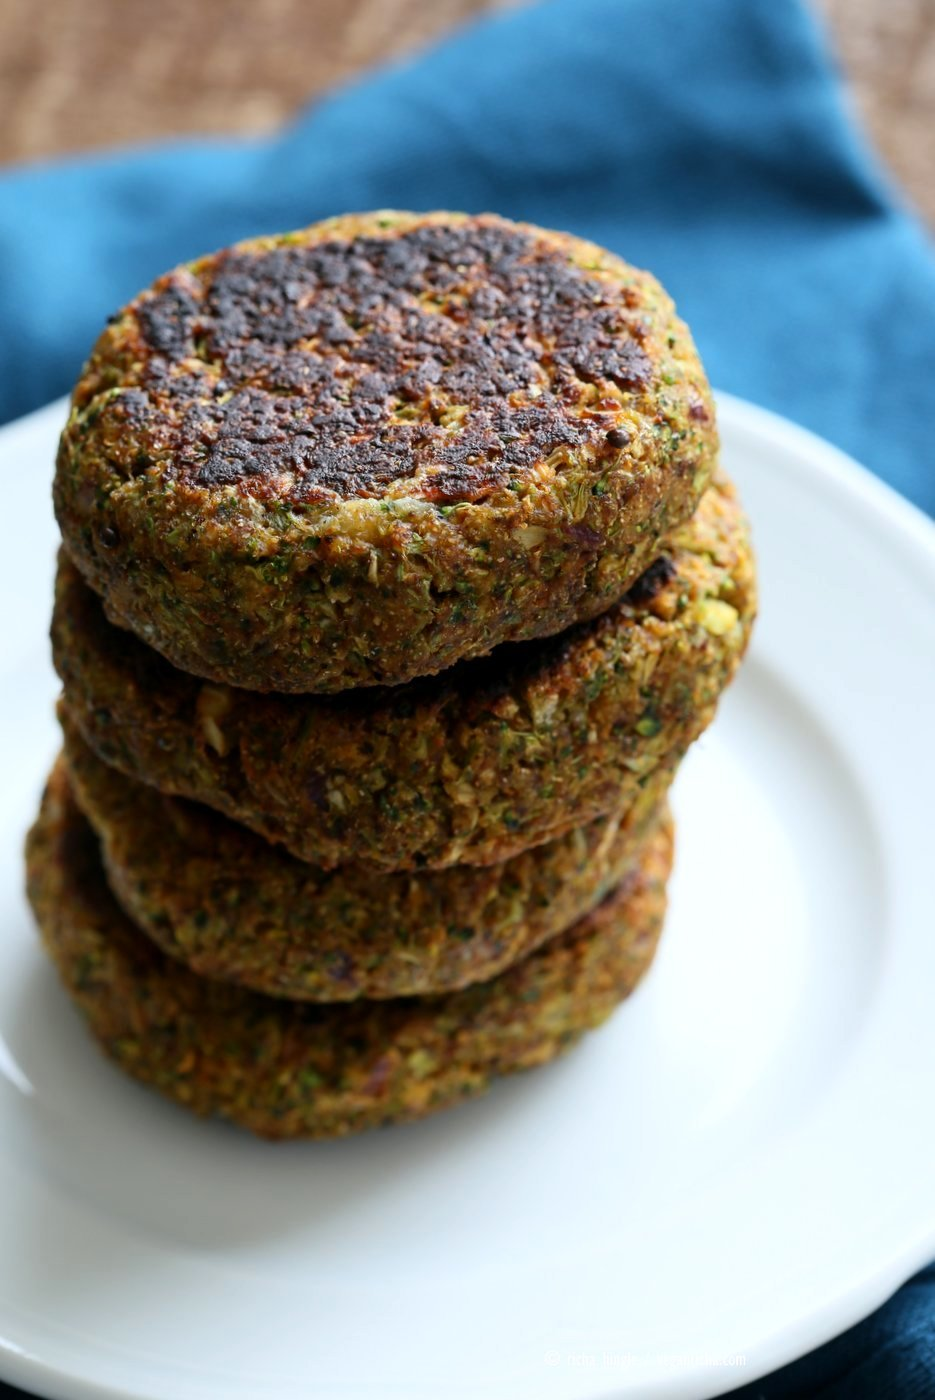 Smoky Spicy Broccoli Fritters with Chickpea flour and spices. Quick and Easy Snack or breakfast. Vegan Gluten-free Nut-free Soy-free Recipe | VeganRicha.com